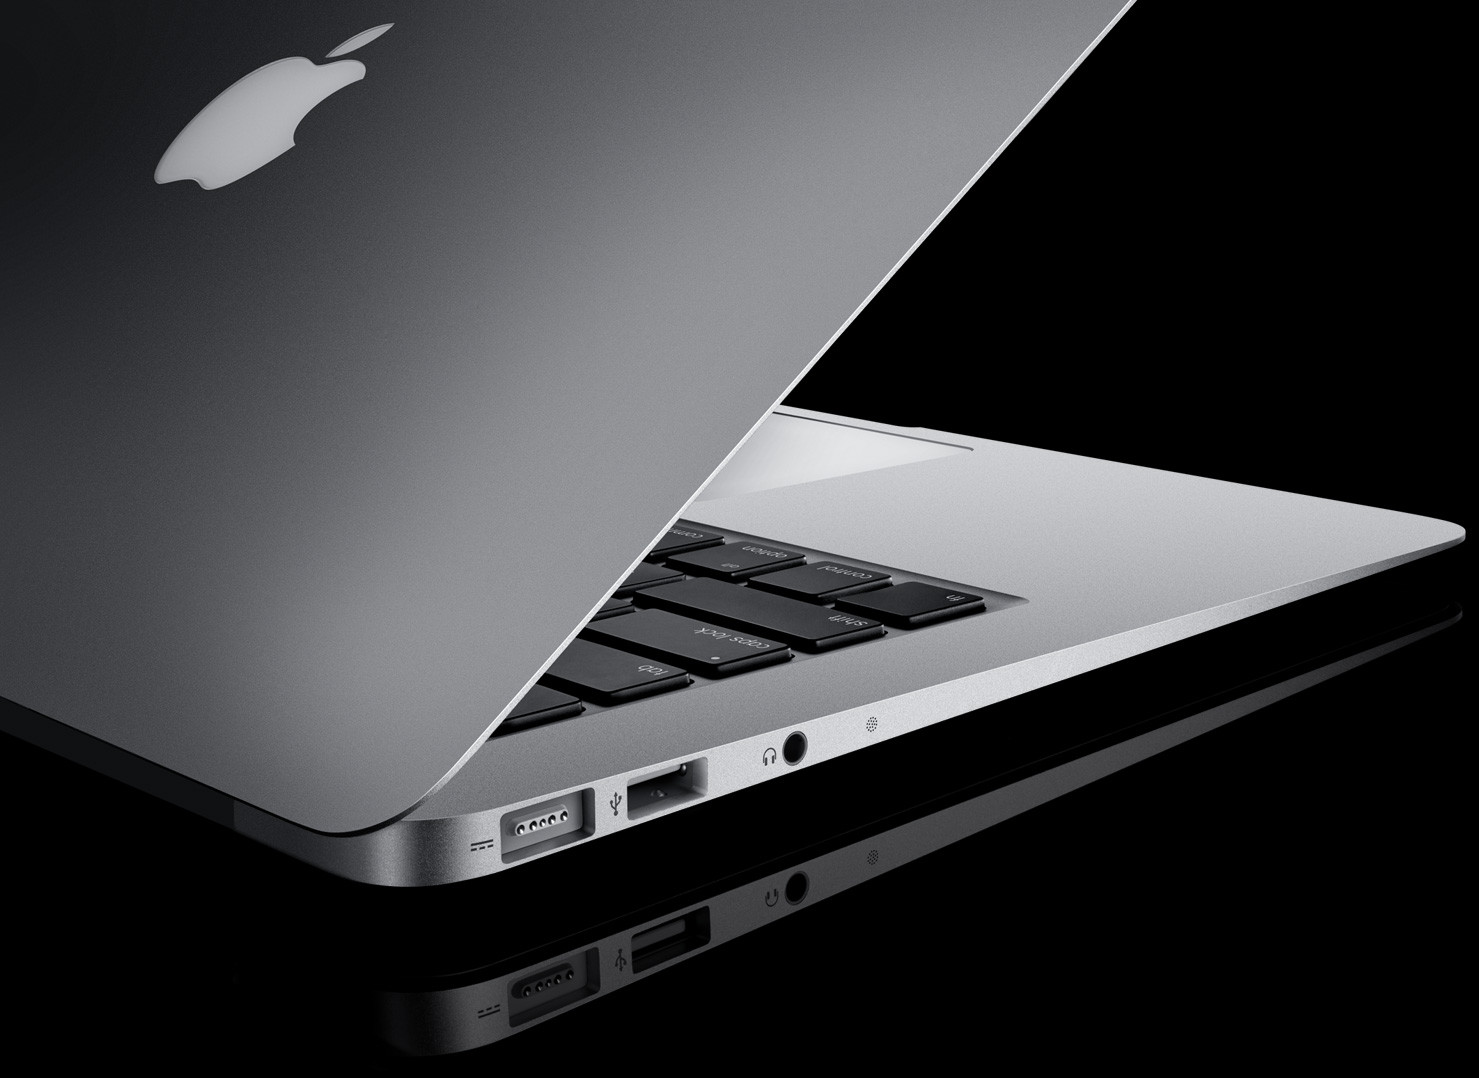 1397238519_12-inch-apple-macbook-air.jpg